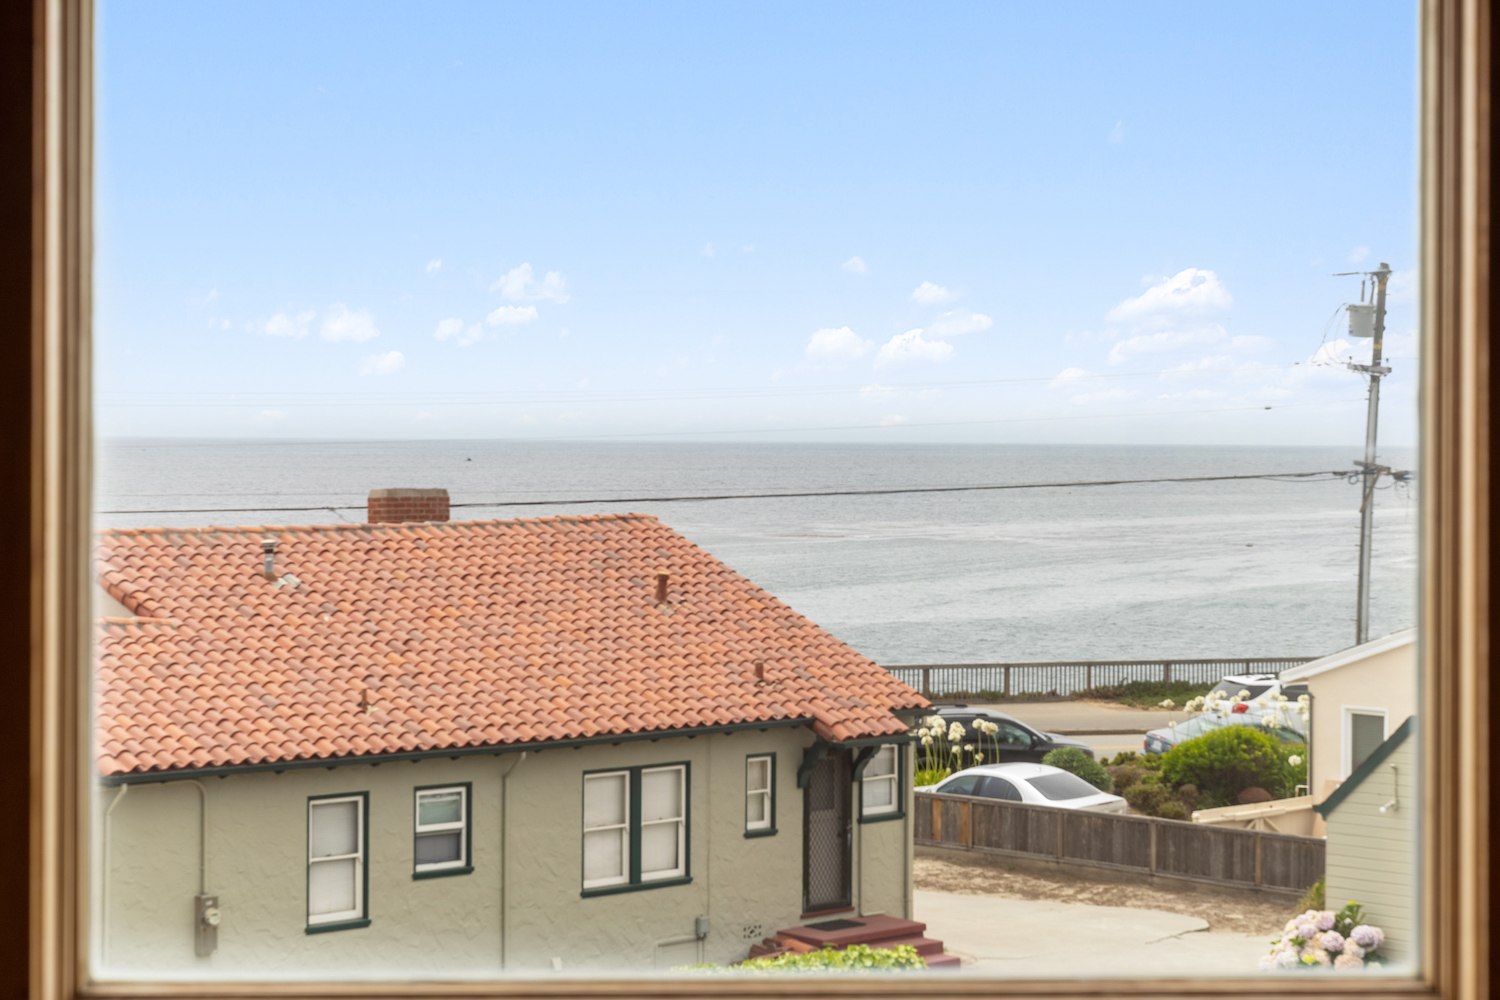 127 bethany curve - ocean view from house